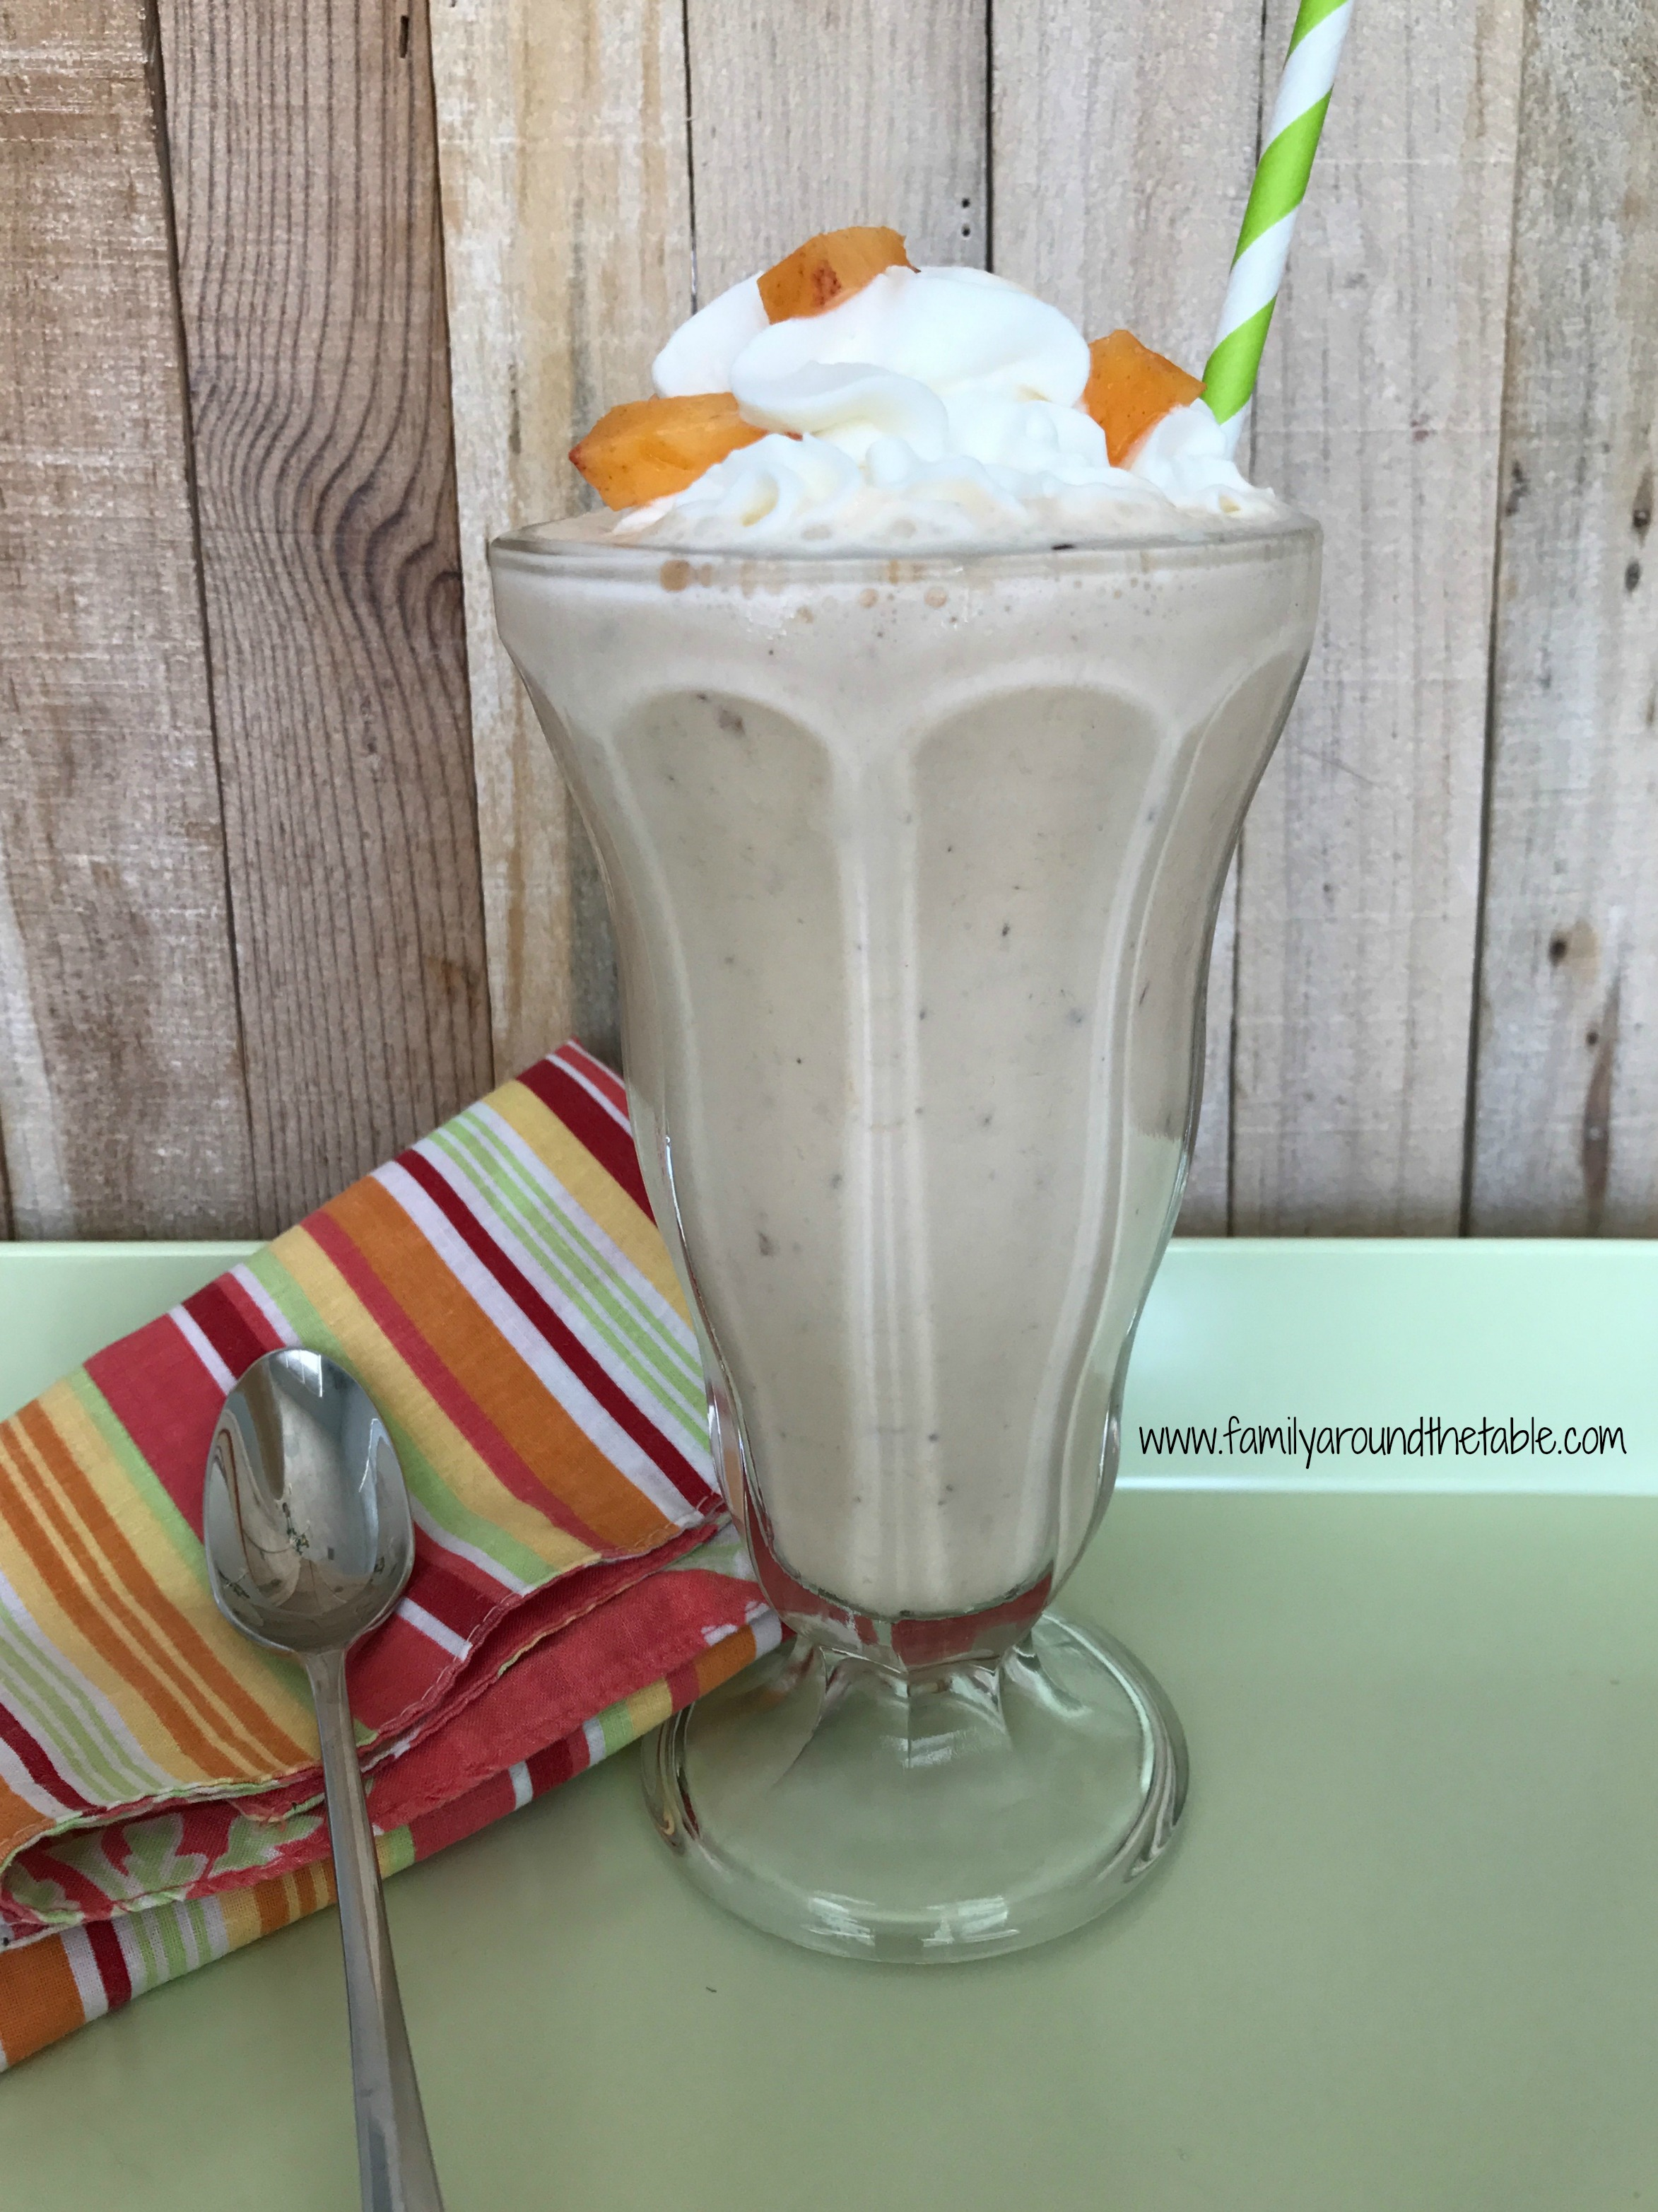 Full of peach and vanilla flavor, this peach milkshake is a treat.